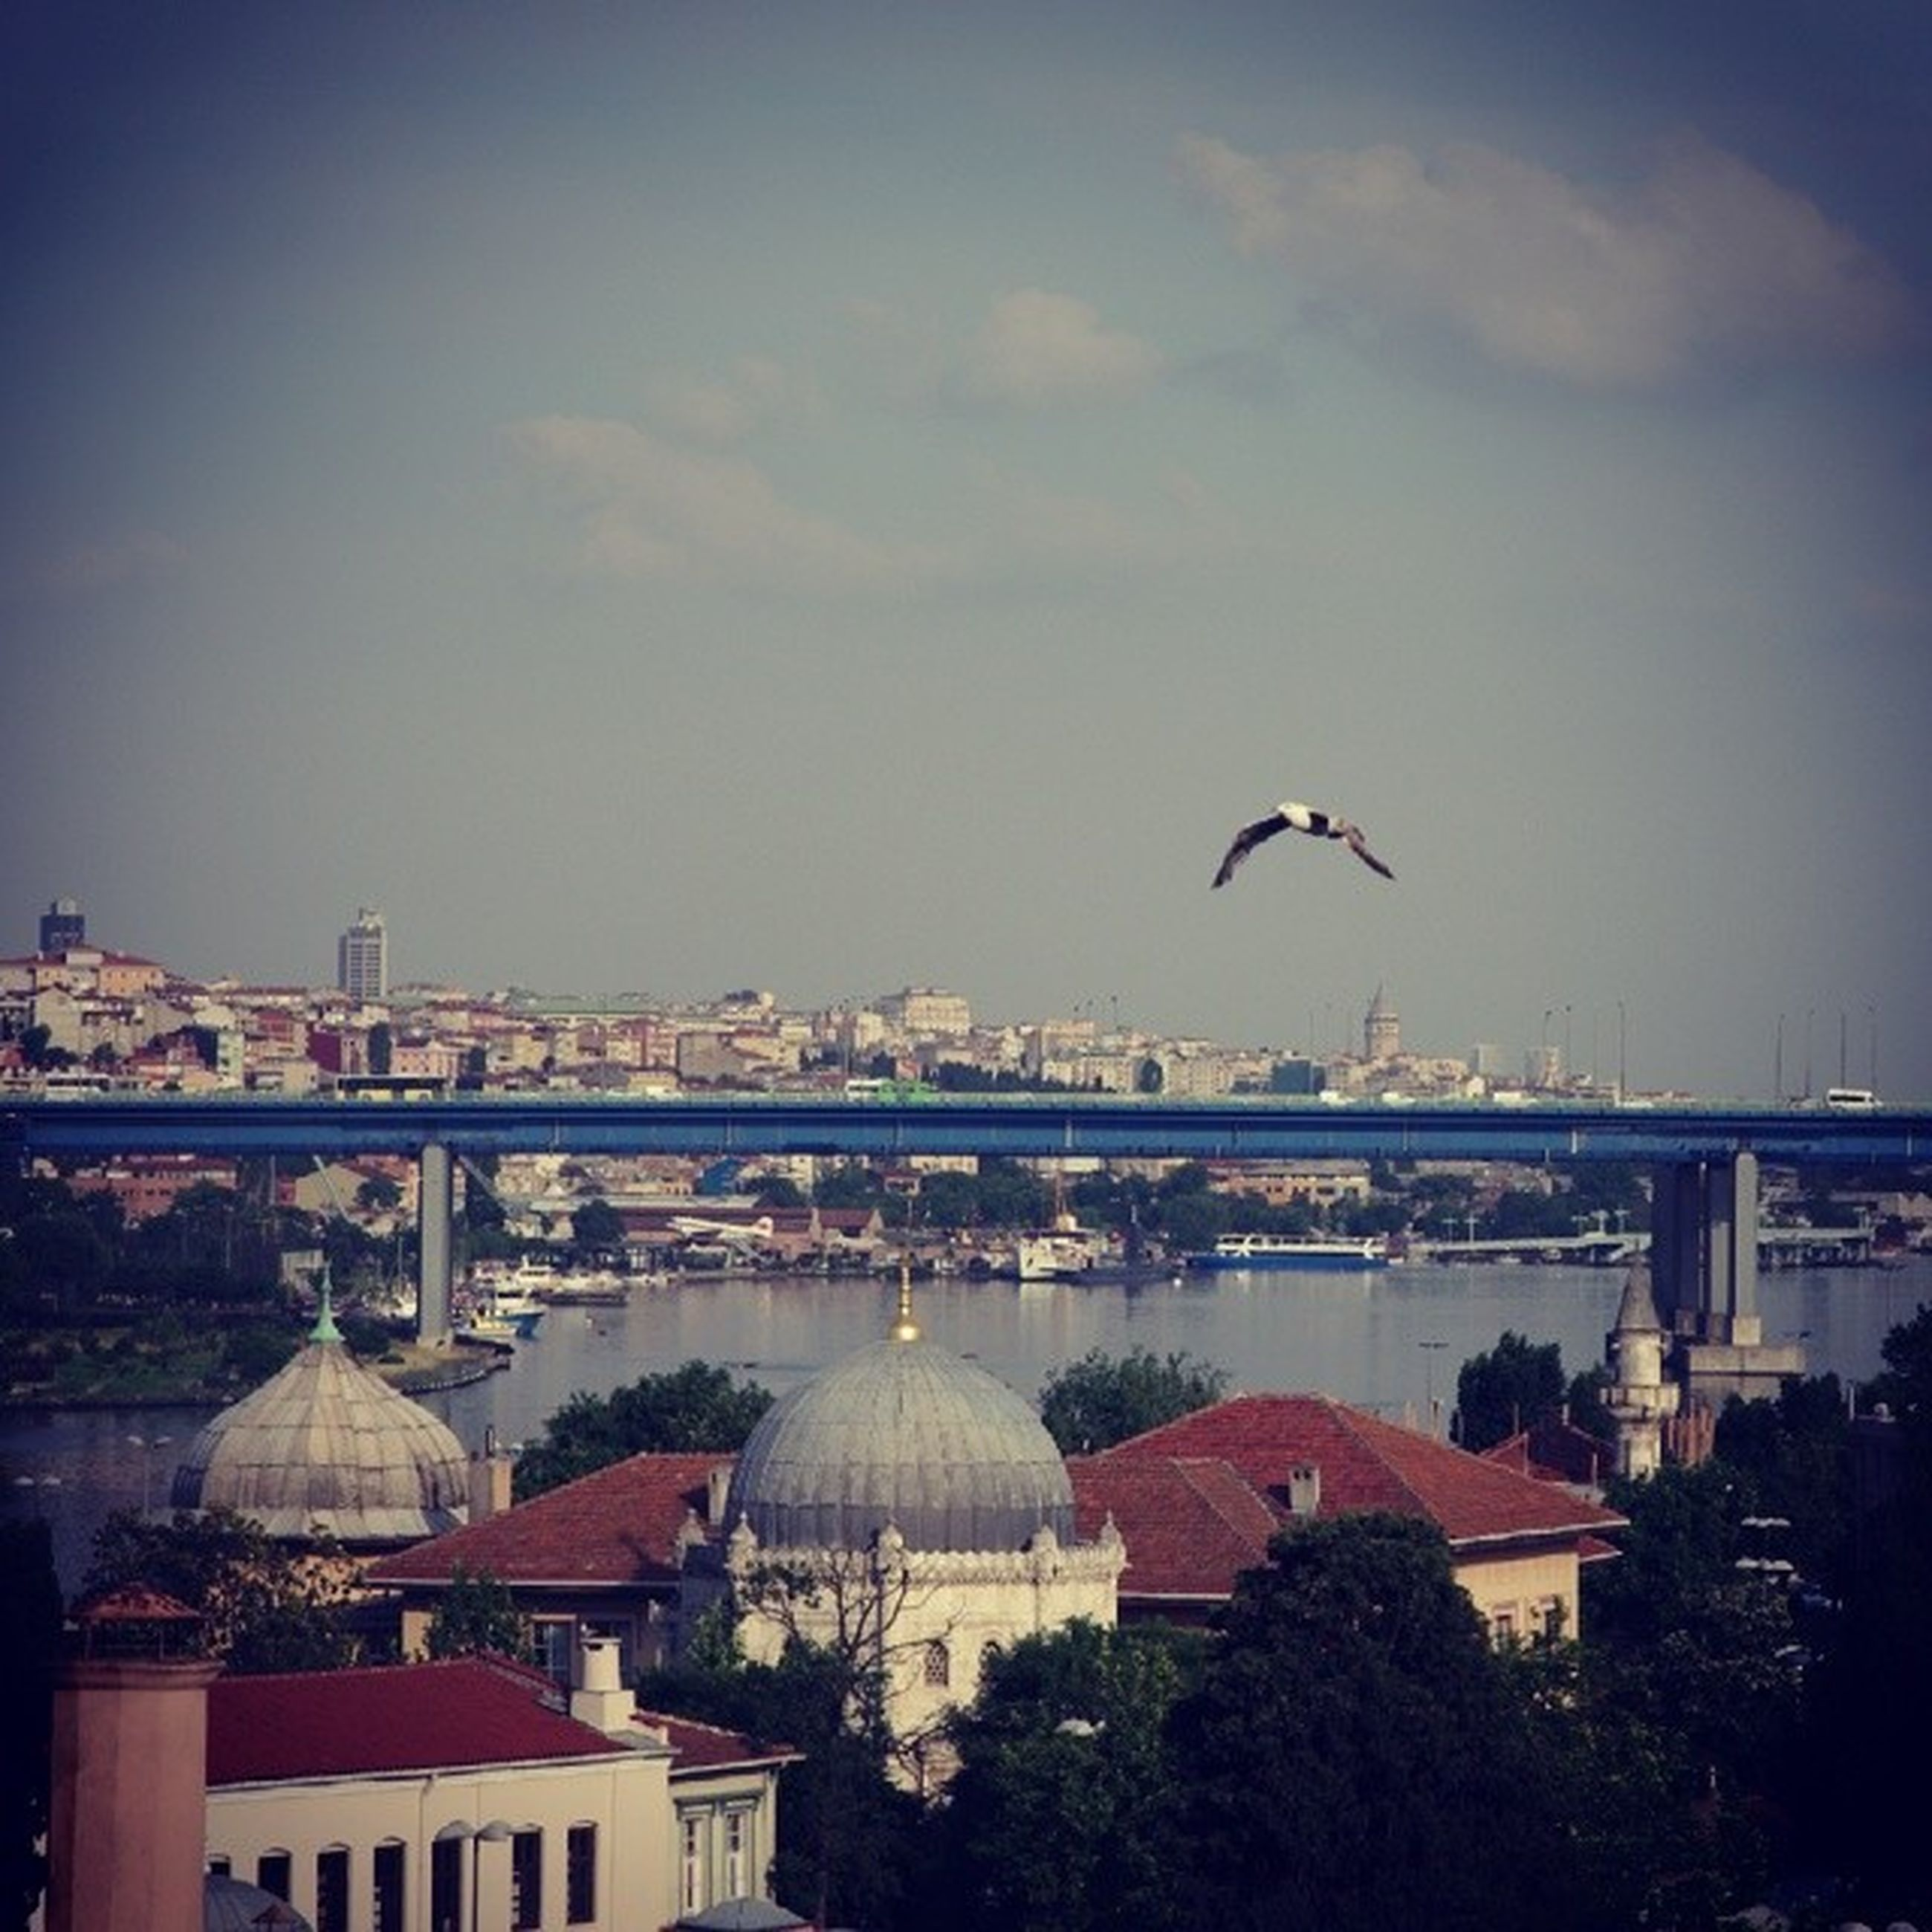 architecture, bird, built structure, building exterior, flying, animal themes, animals in the wild, sky, city, water, cityscape, wildlife, one animal, seagull, river, mid-air, bridge - man made structure, outdoors, spread wings, sea